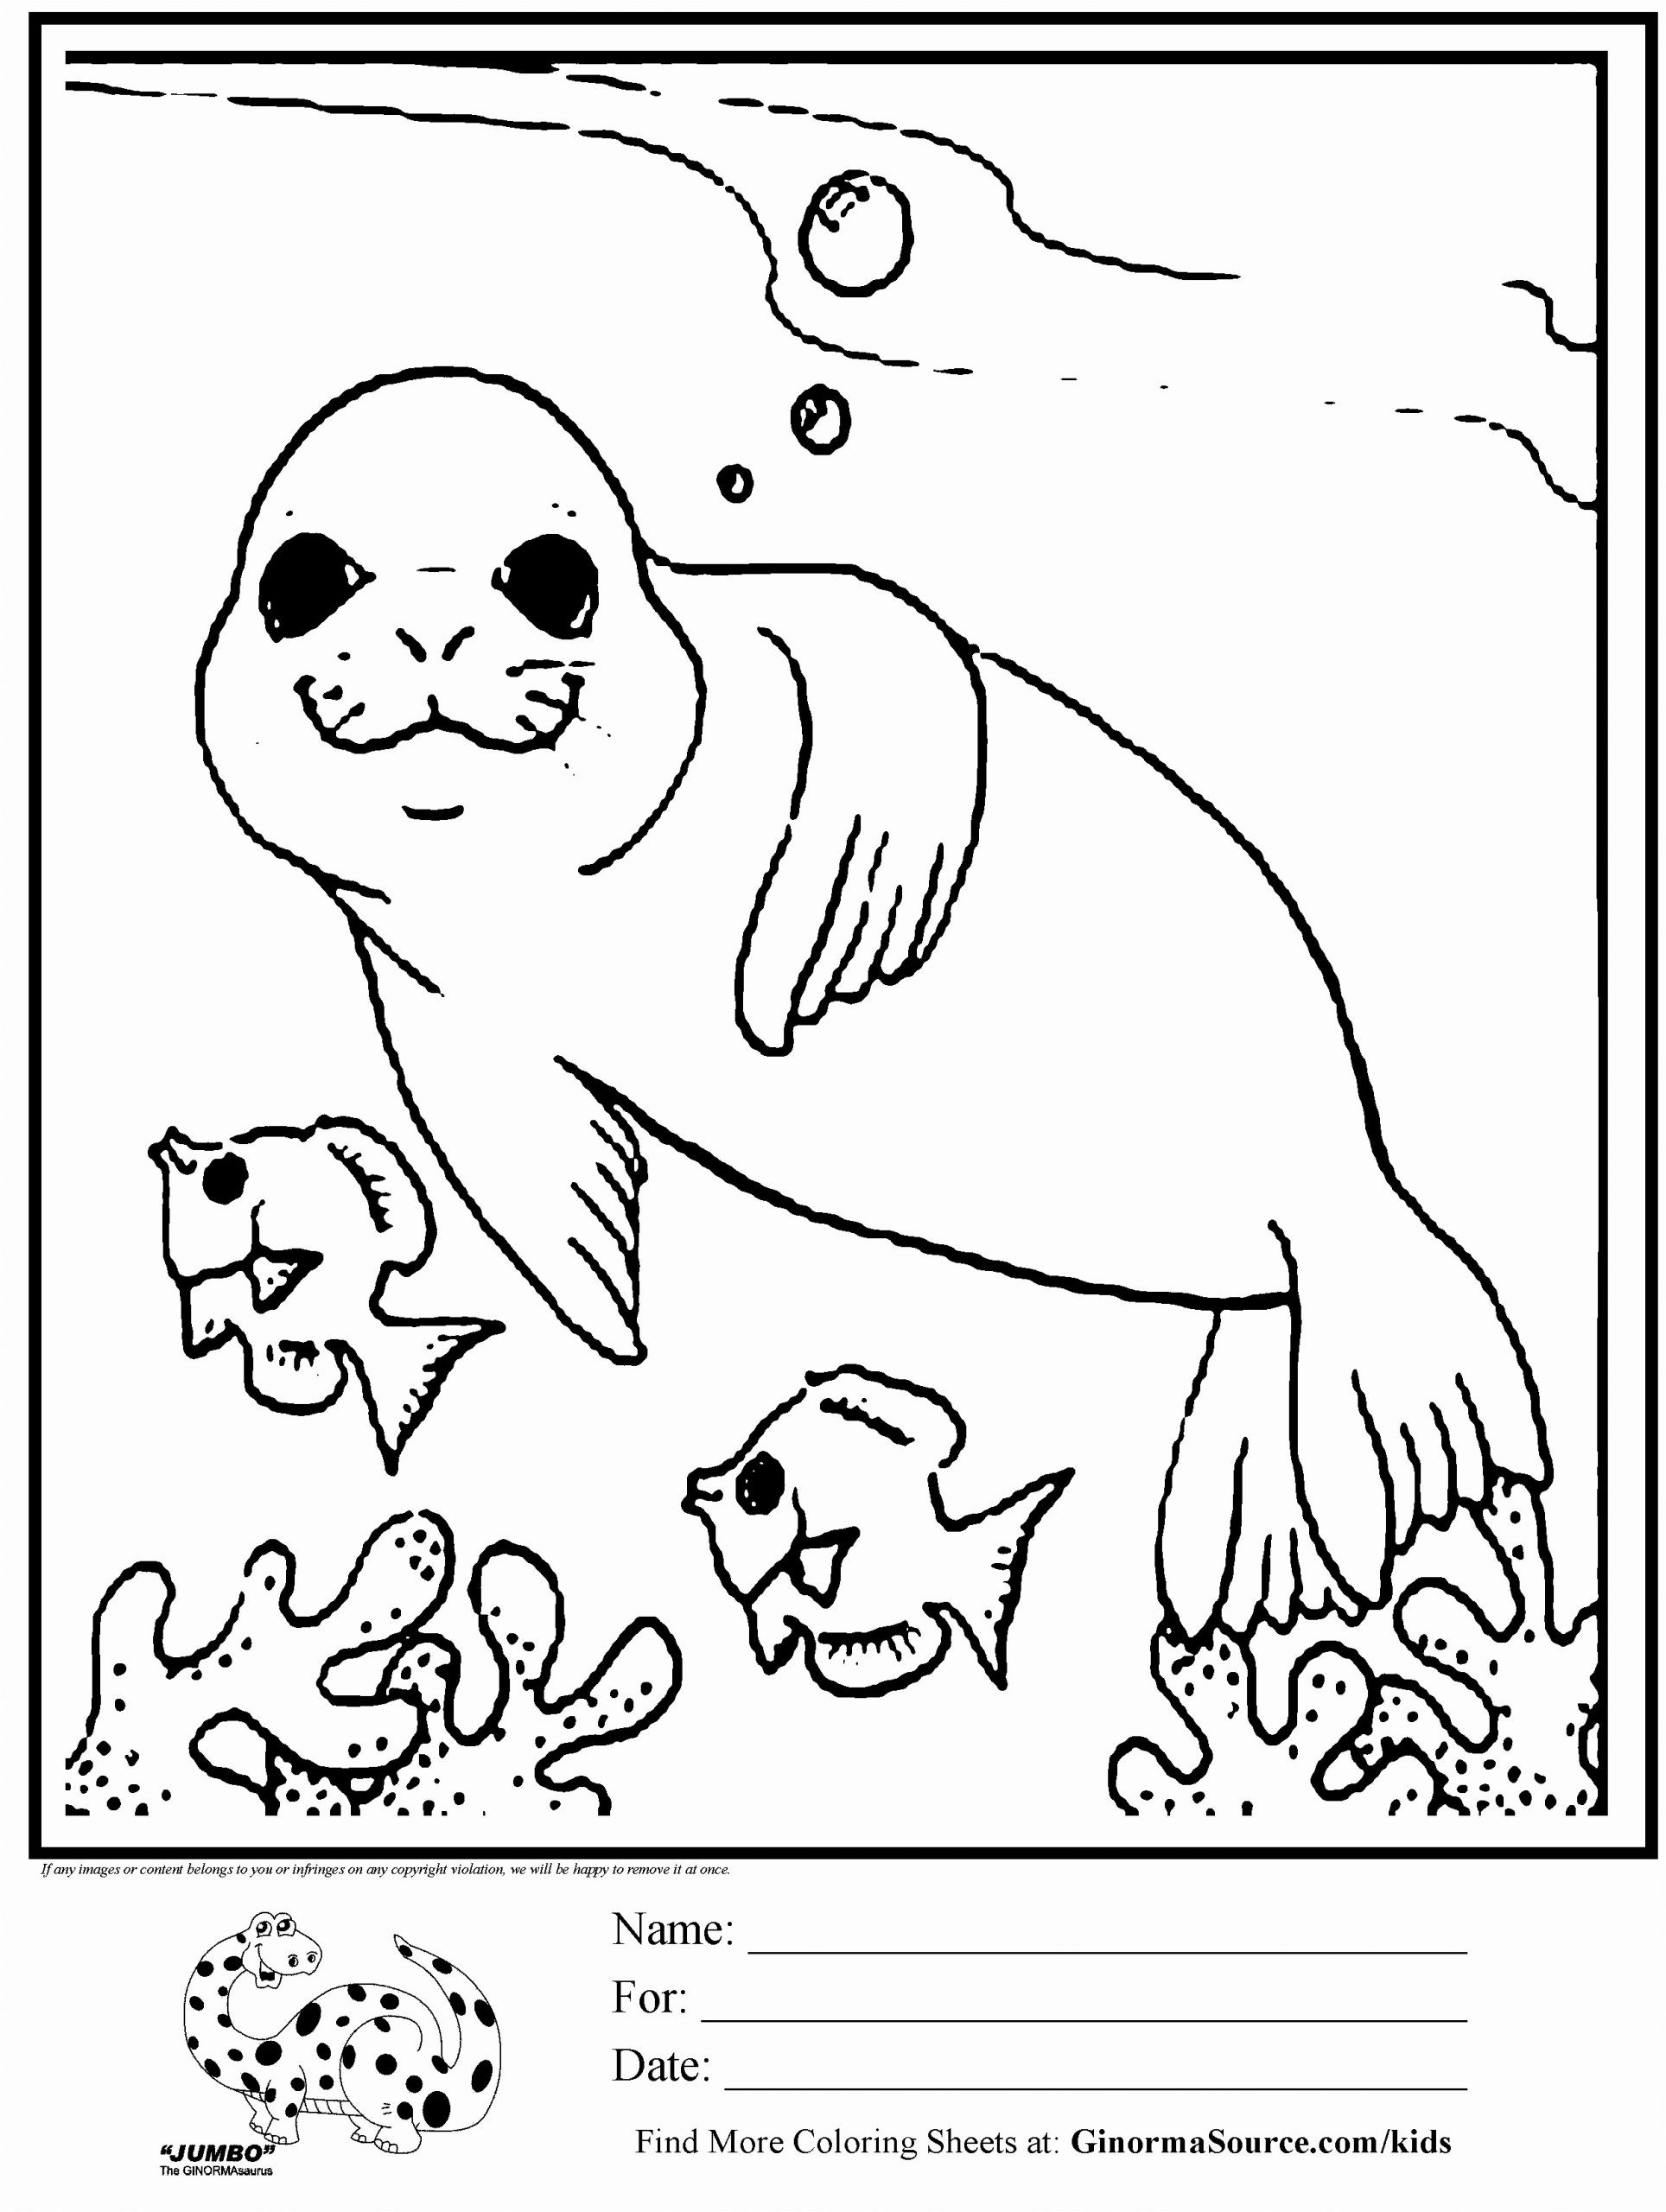 Hibernation Worksheet for Preschool Ocean Coloring Sheets Preschool Pumpkins Free for Kids